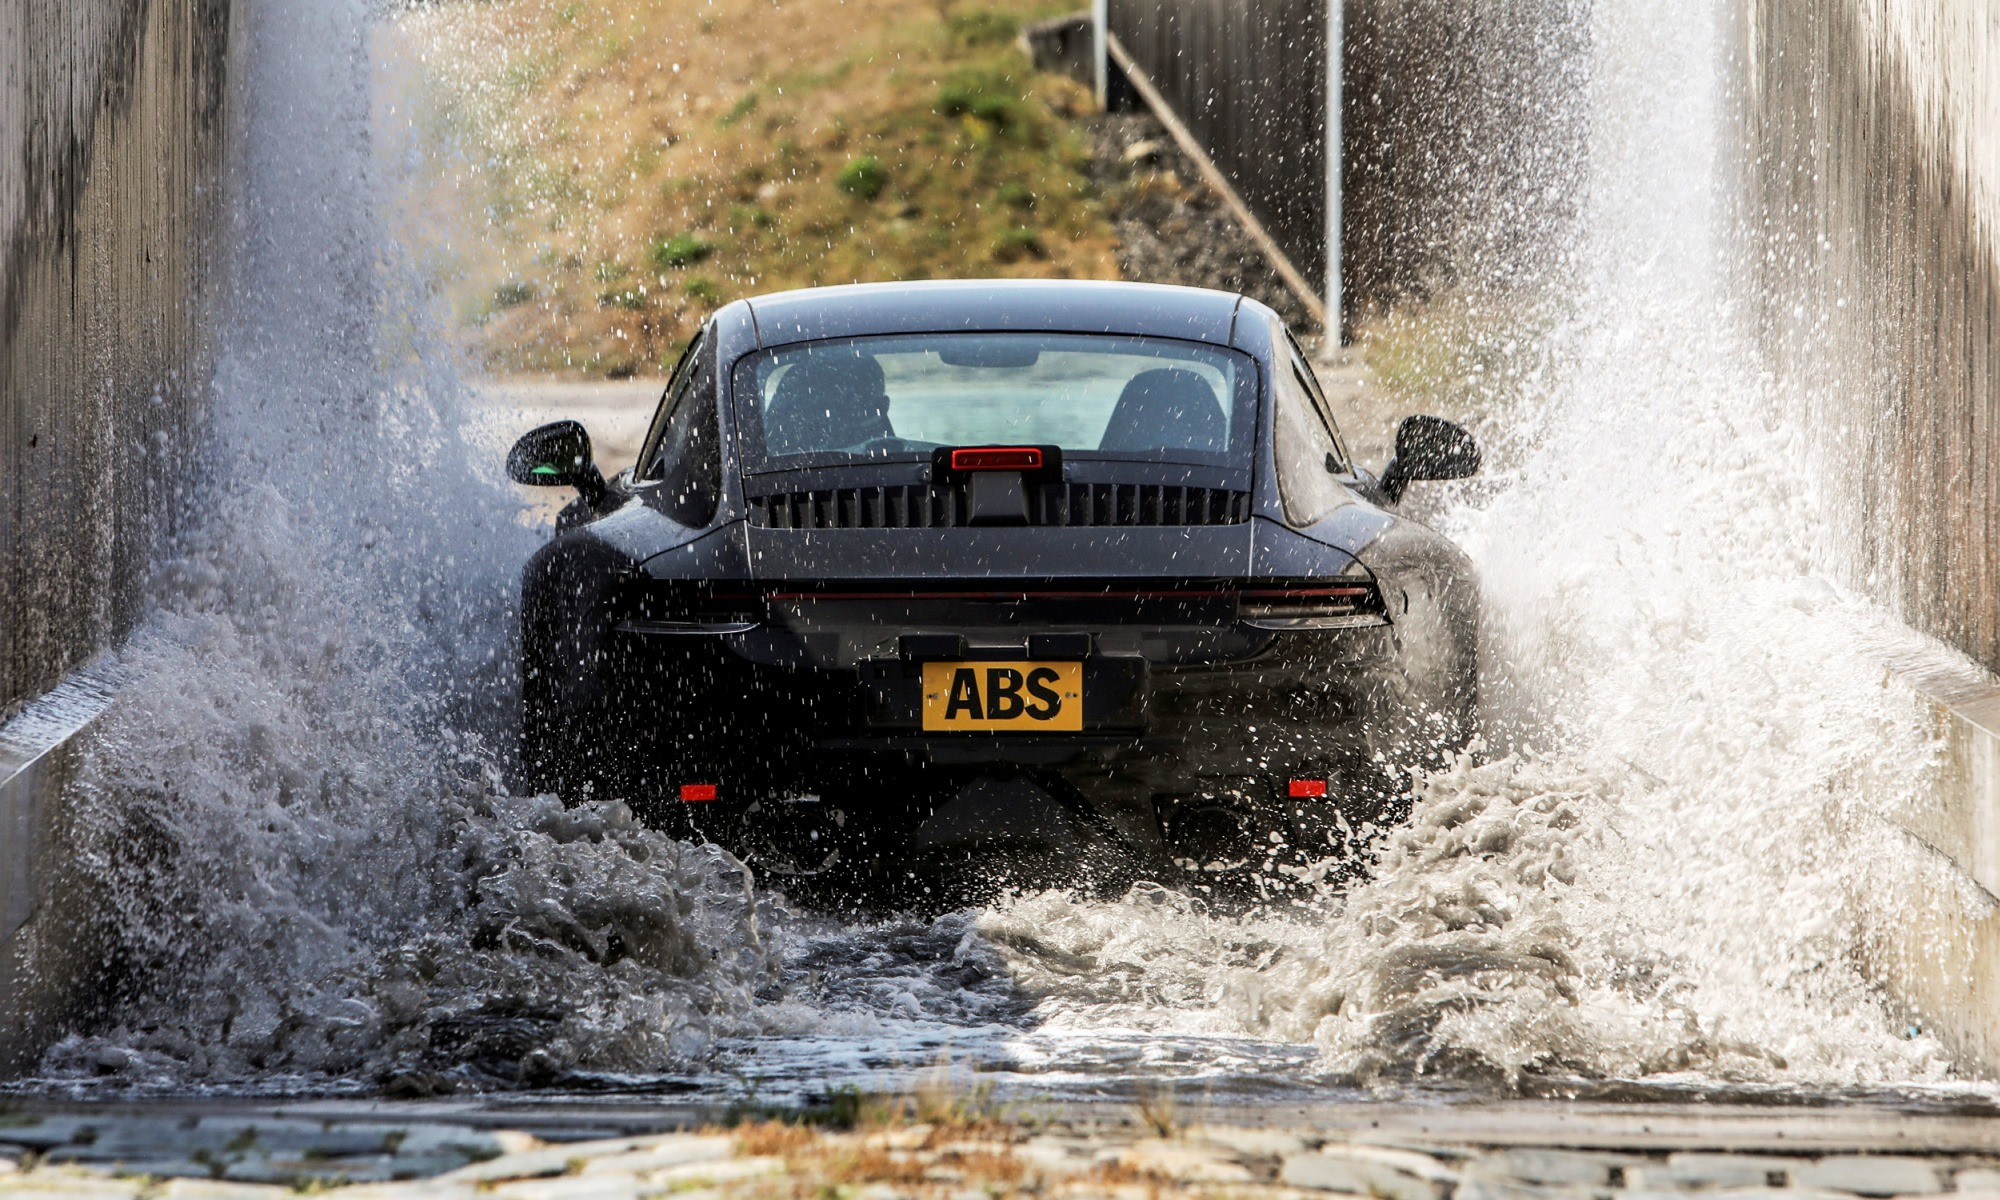 New Porsche 911 water ingress test